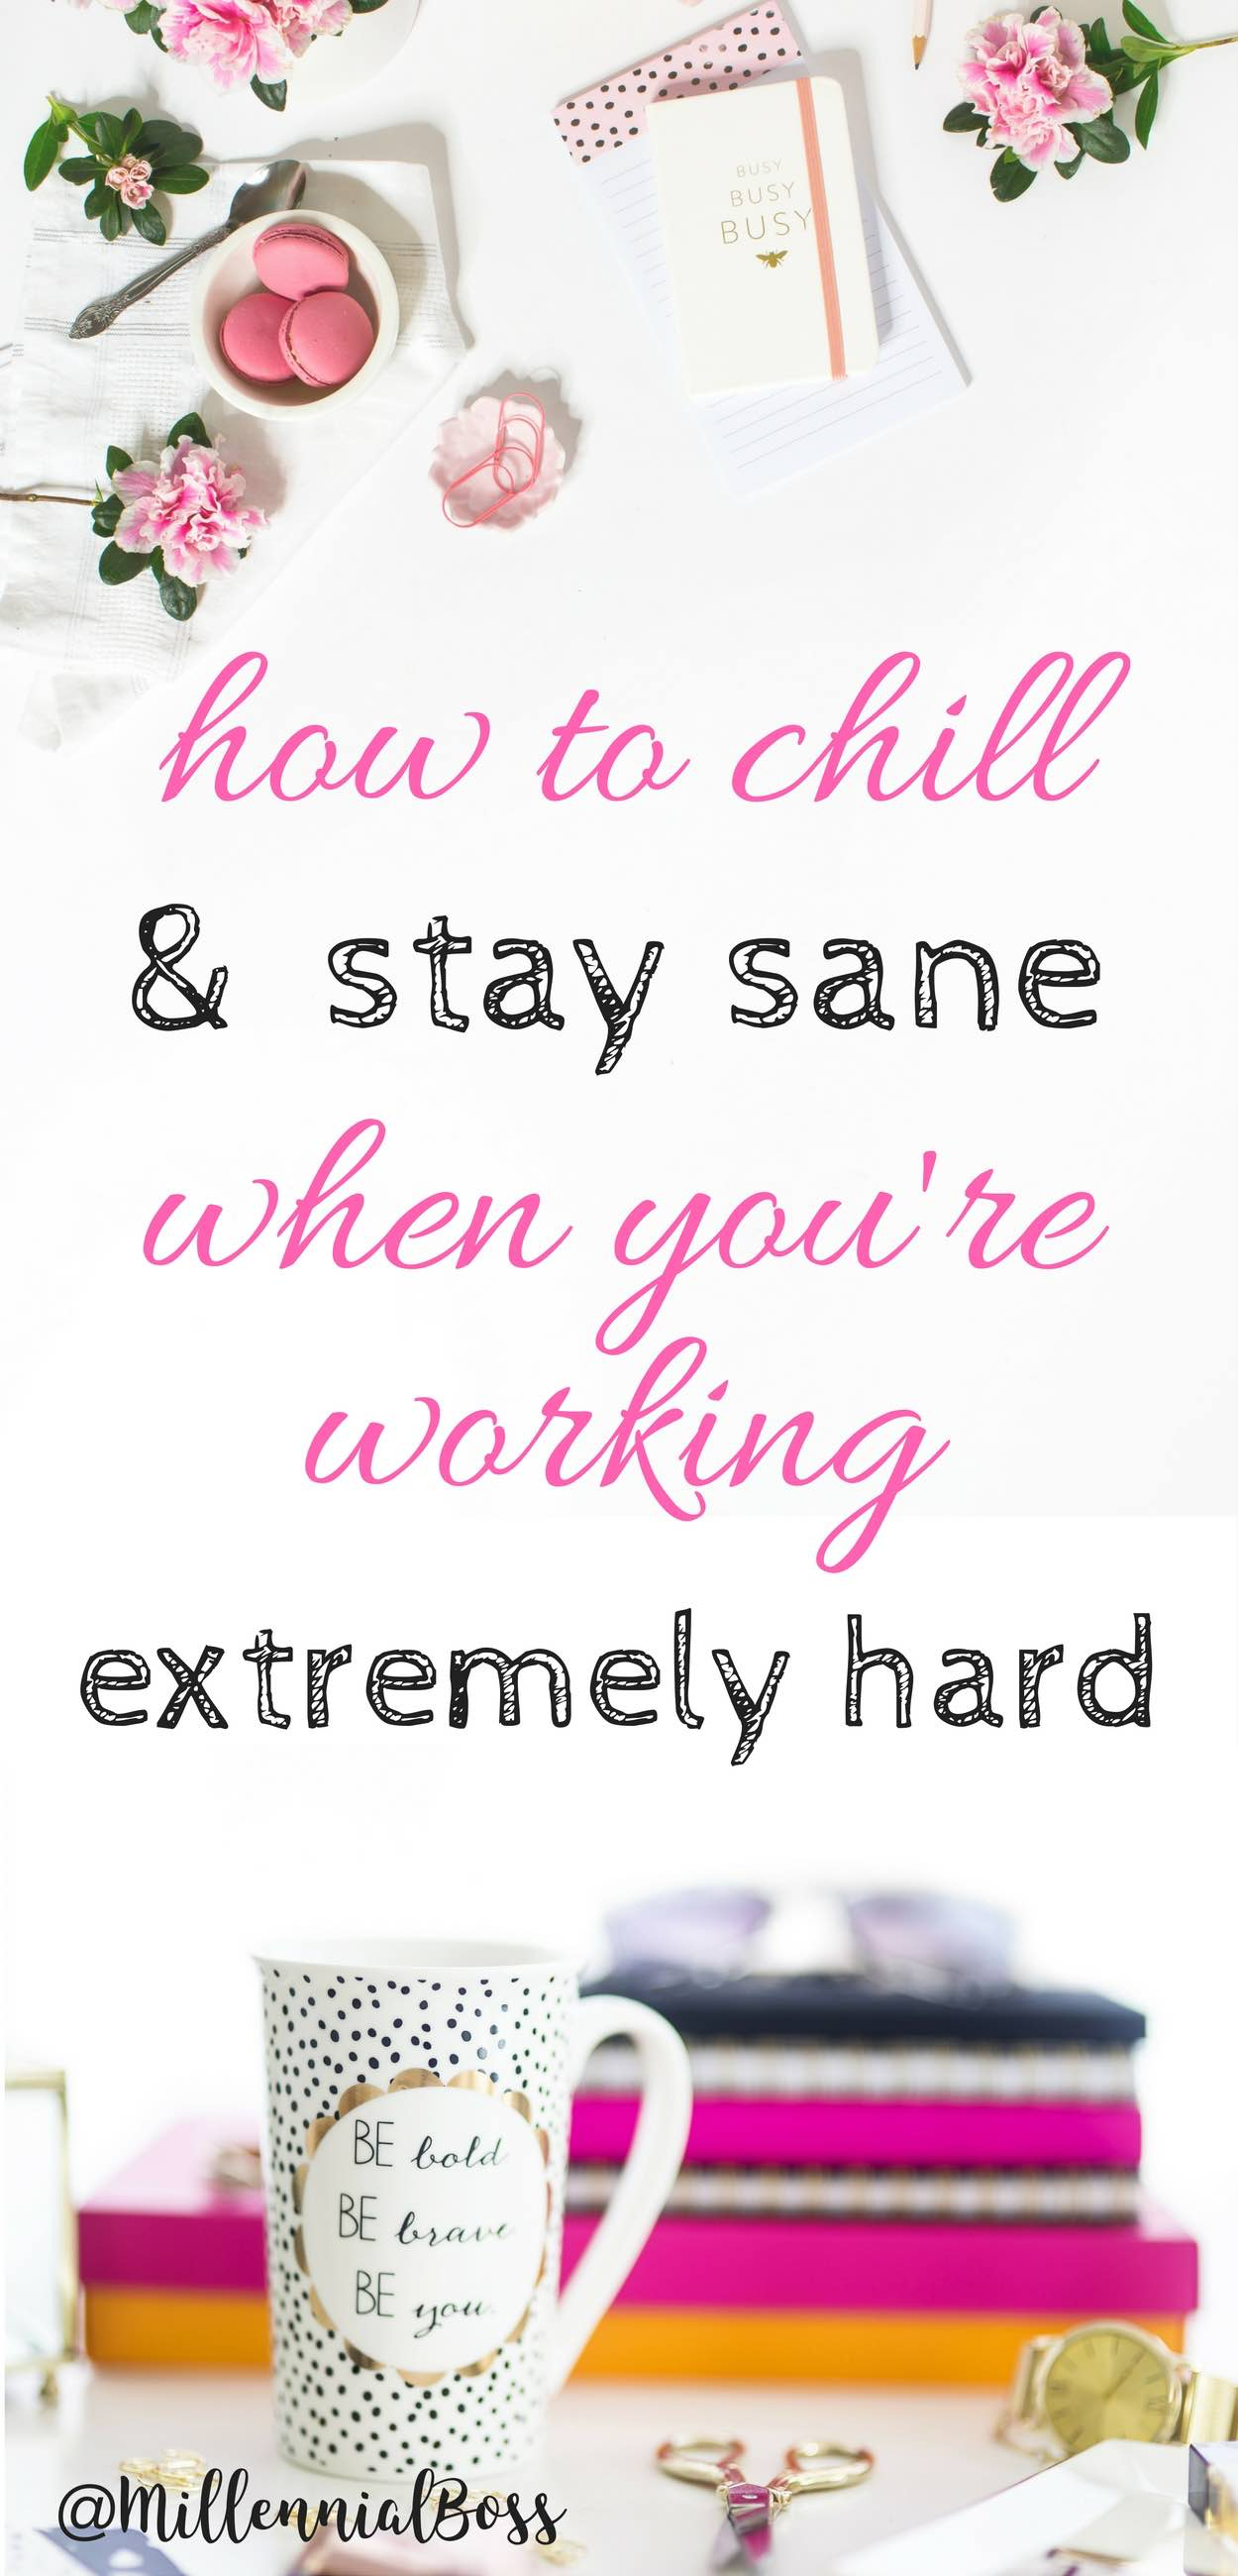 Great advice for the people like me who don't stop! How to stay sane when you're working extremely hard